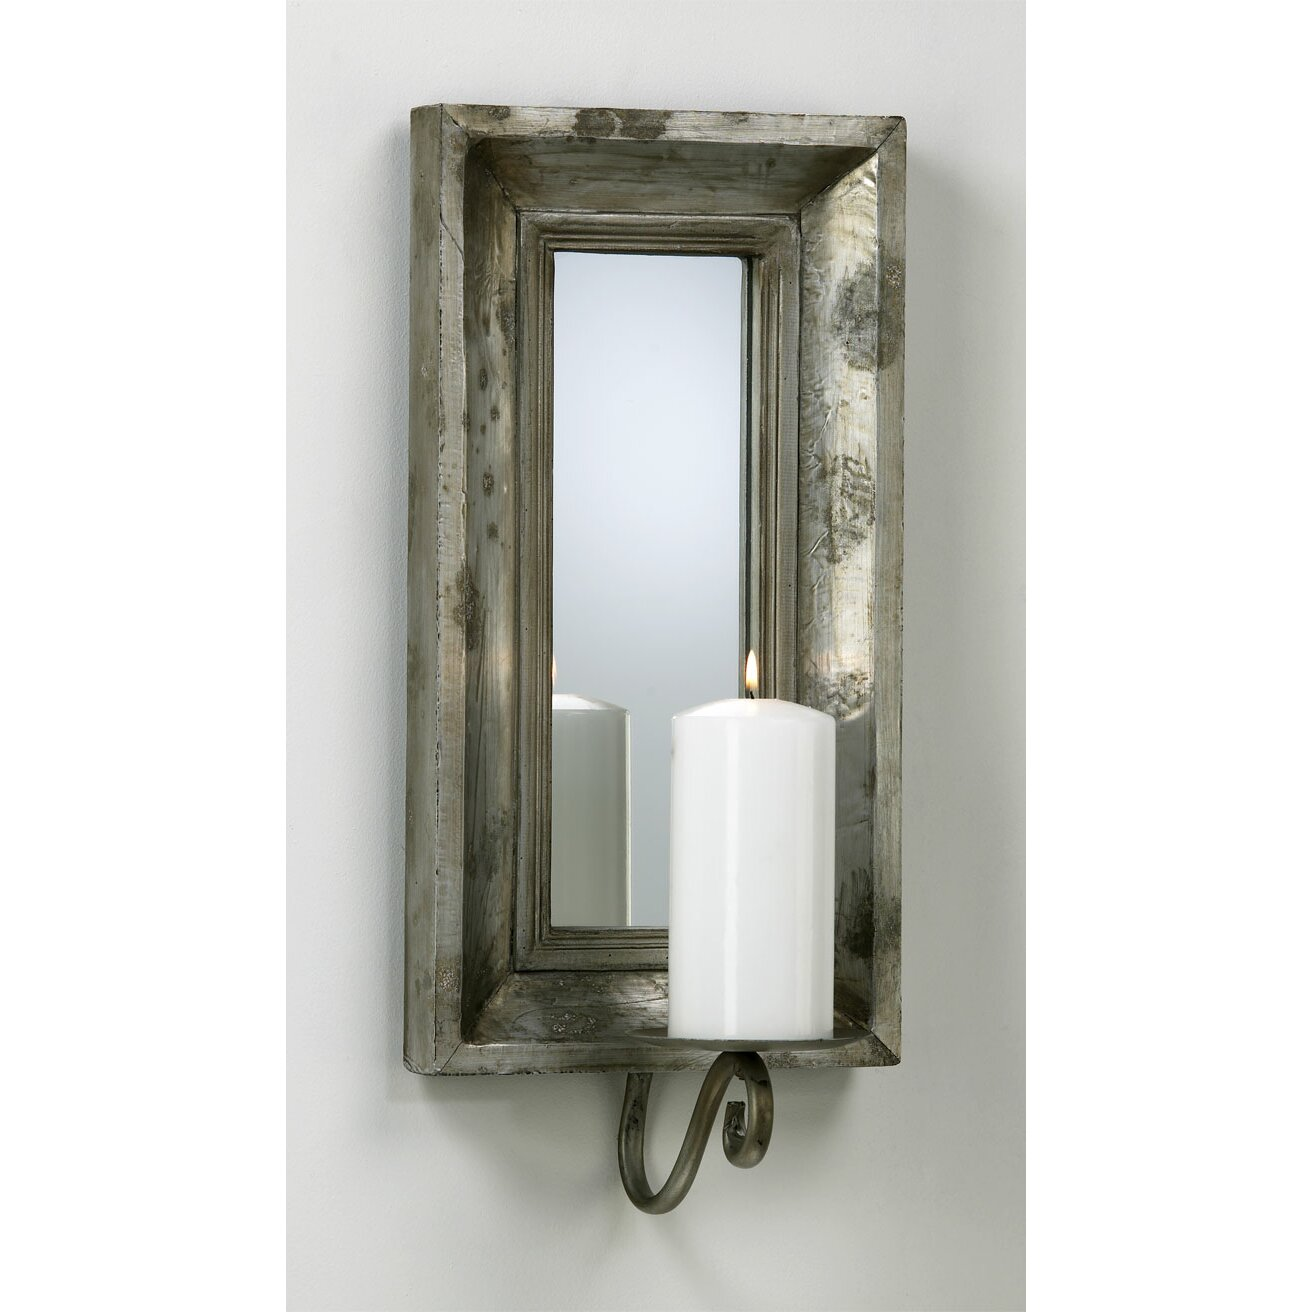 Wall Sconce Candle Mirror : Glass and Wood Abelle Candle Mirror Wall Sconce Wayfair